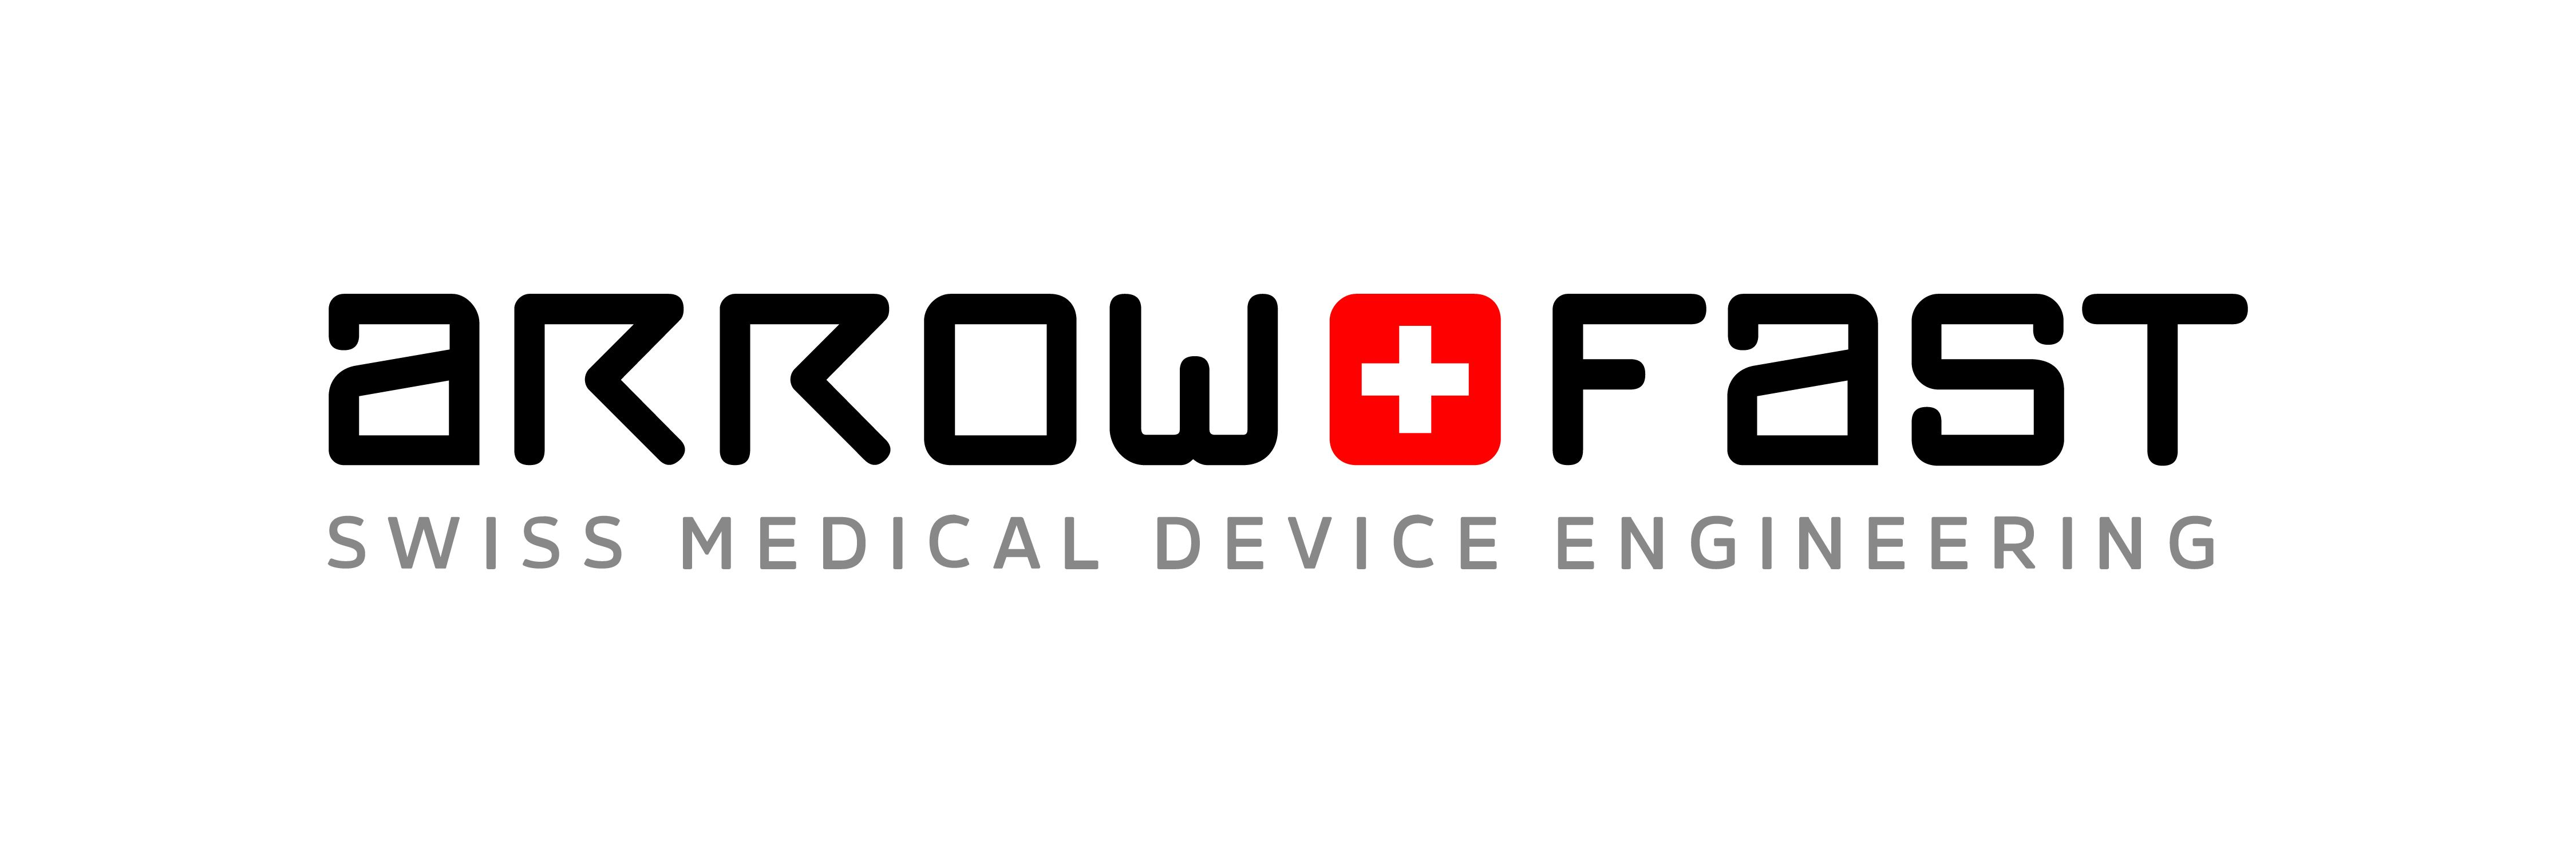 ArrowFast Medical Device Engineering